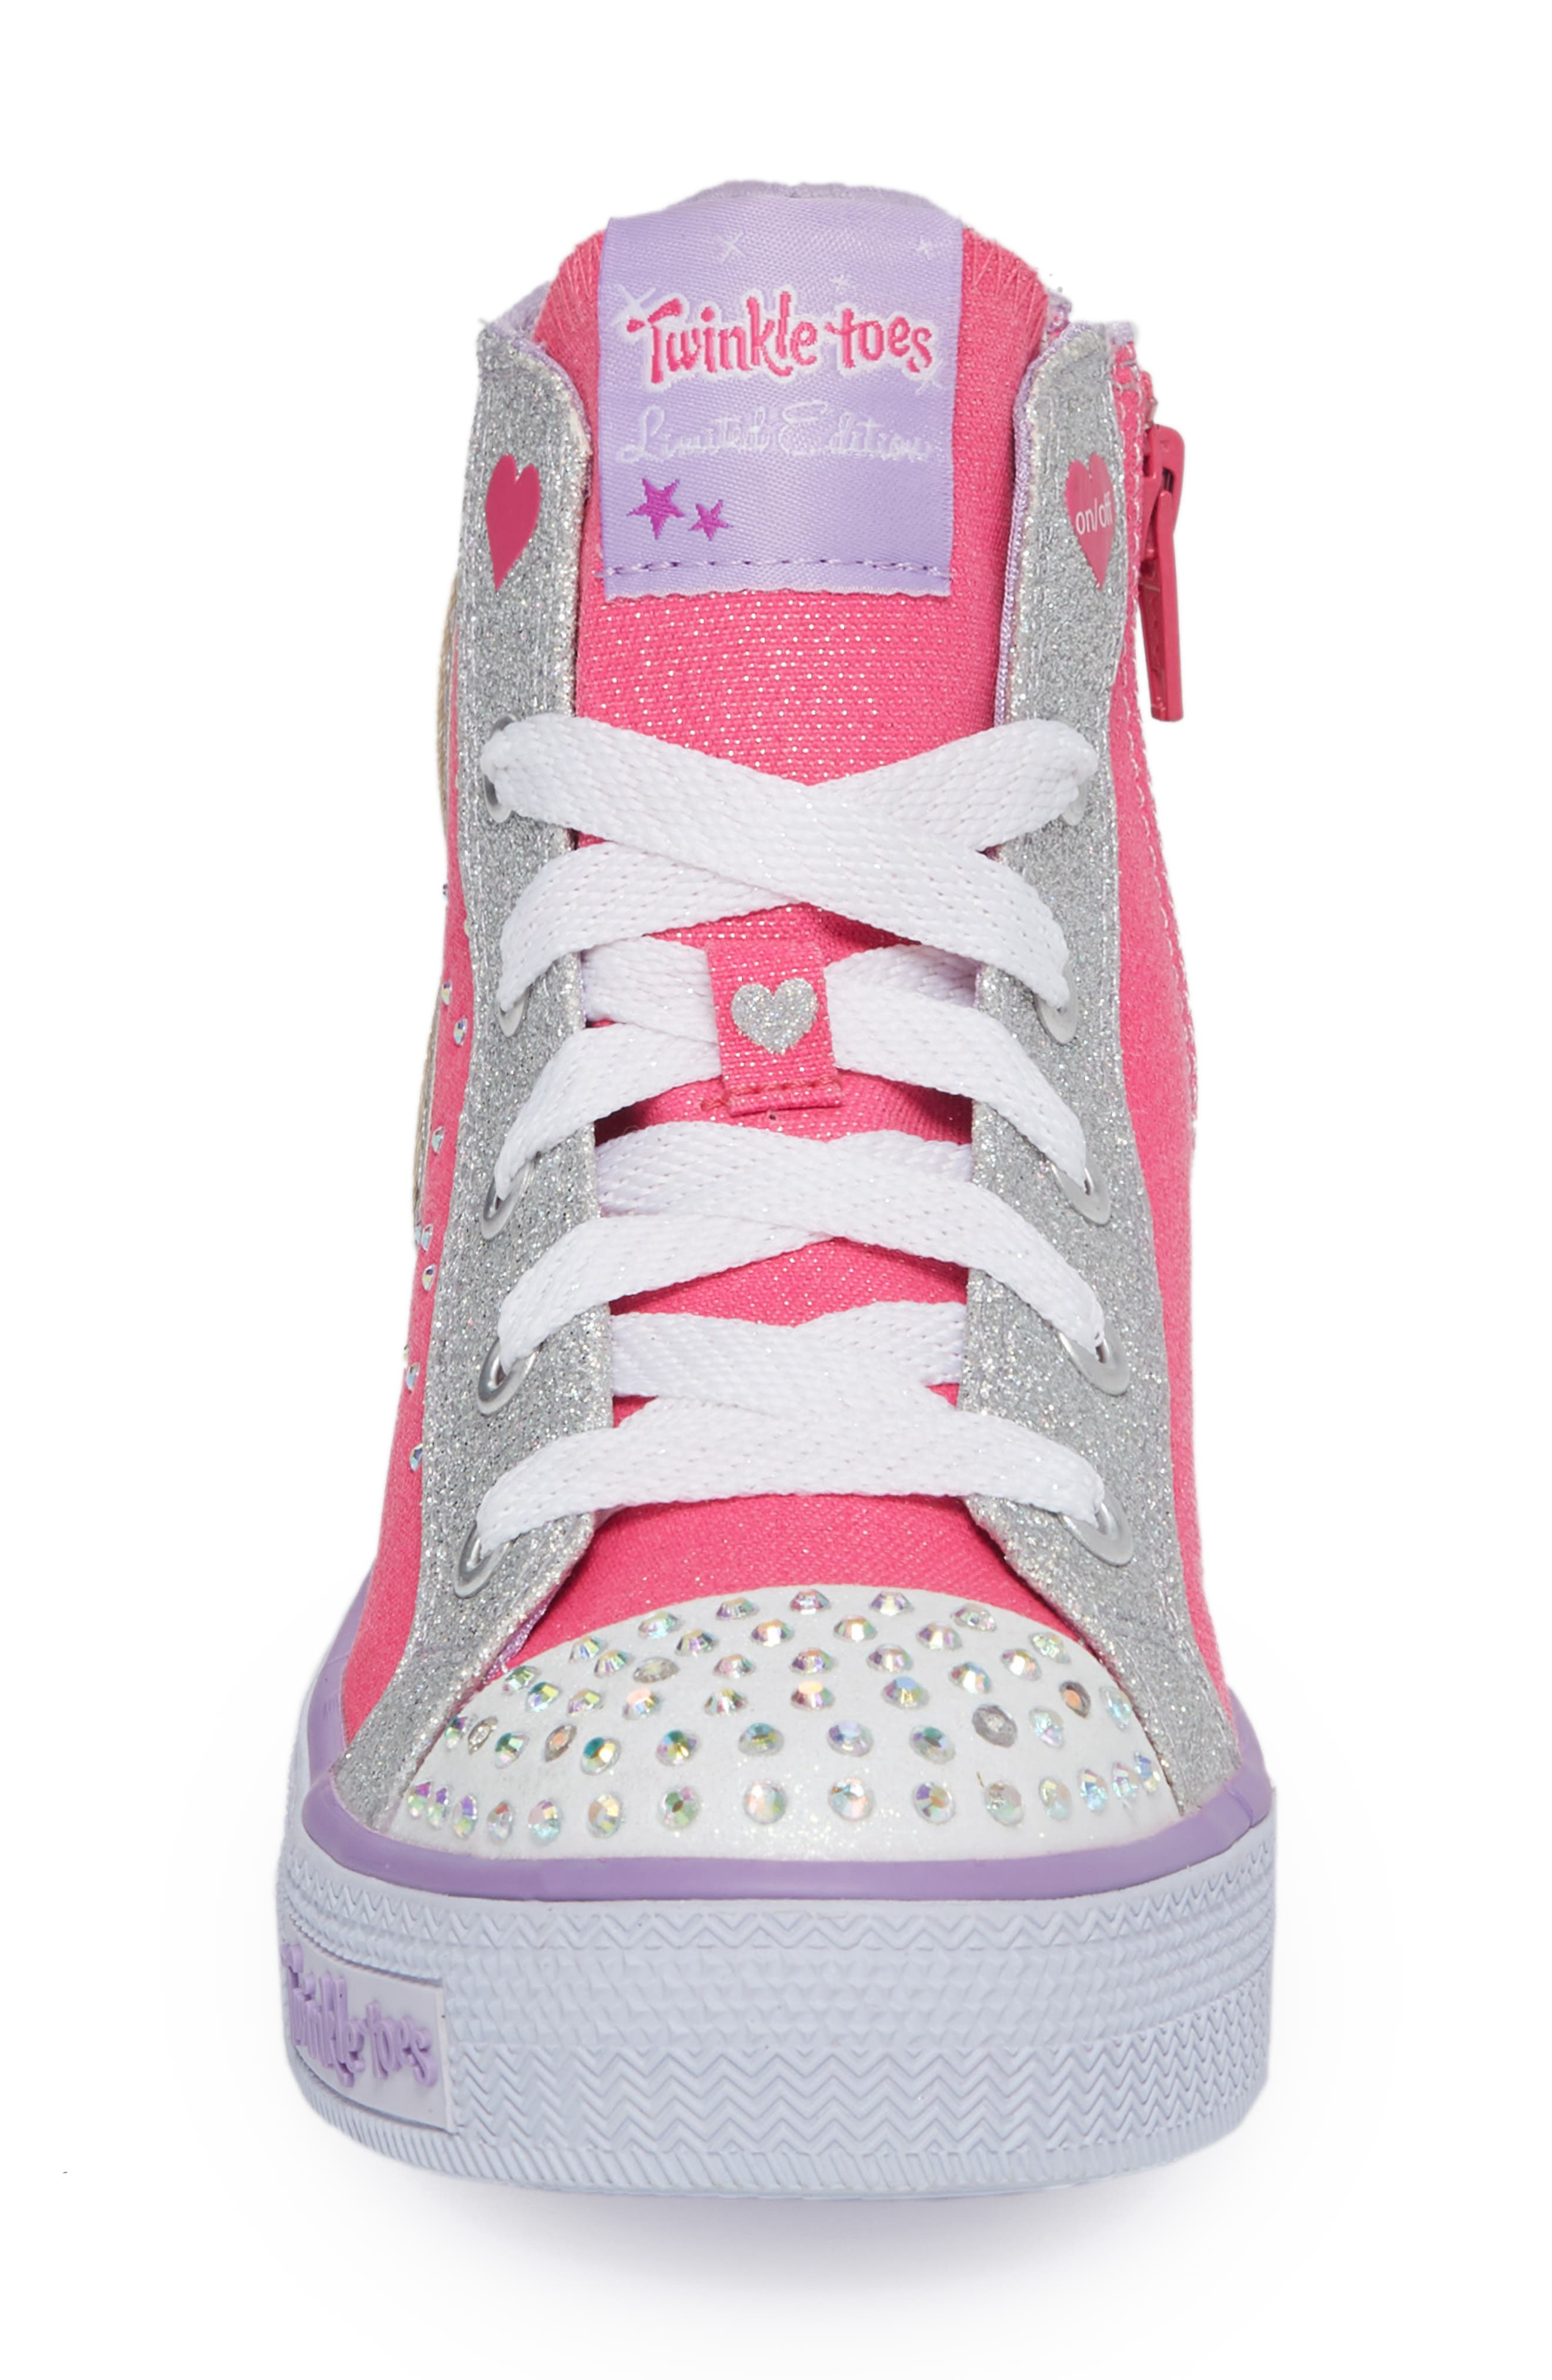 Twinkle Toes Shuffles Wonder Wings Light-Up High Top Sneaker,                             Alternate thumbnail 4, color,                             Hot Pink/ Silver